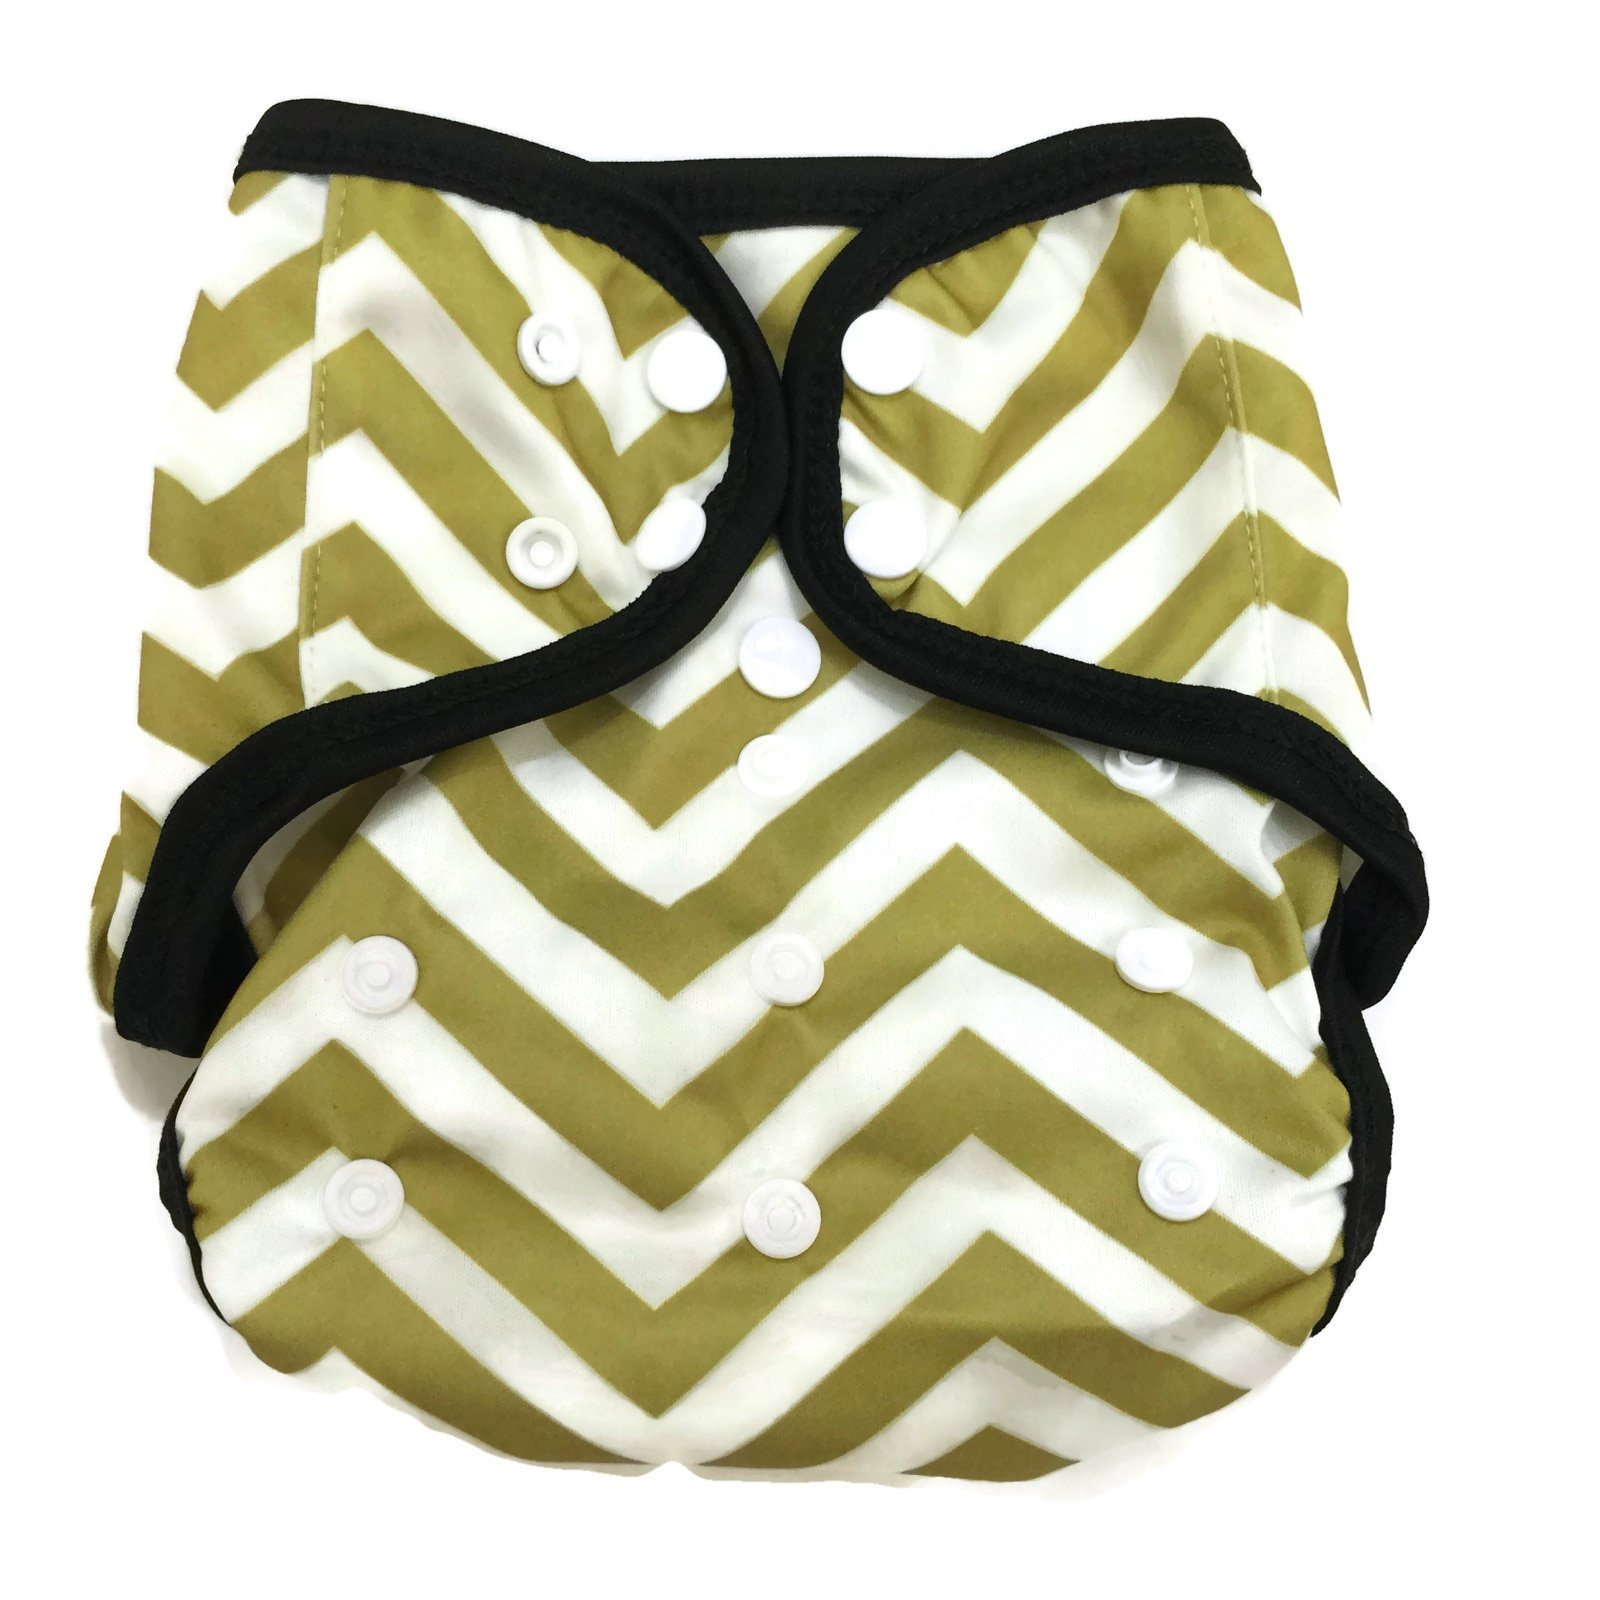 BB2 Baby One Size Printed Black Gussets Snaps Cloth Diaper Cover for  Prefolds